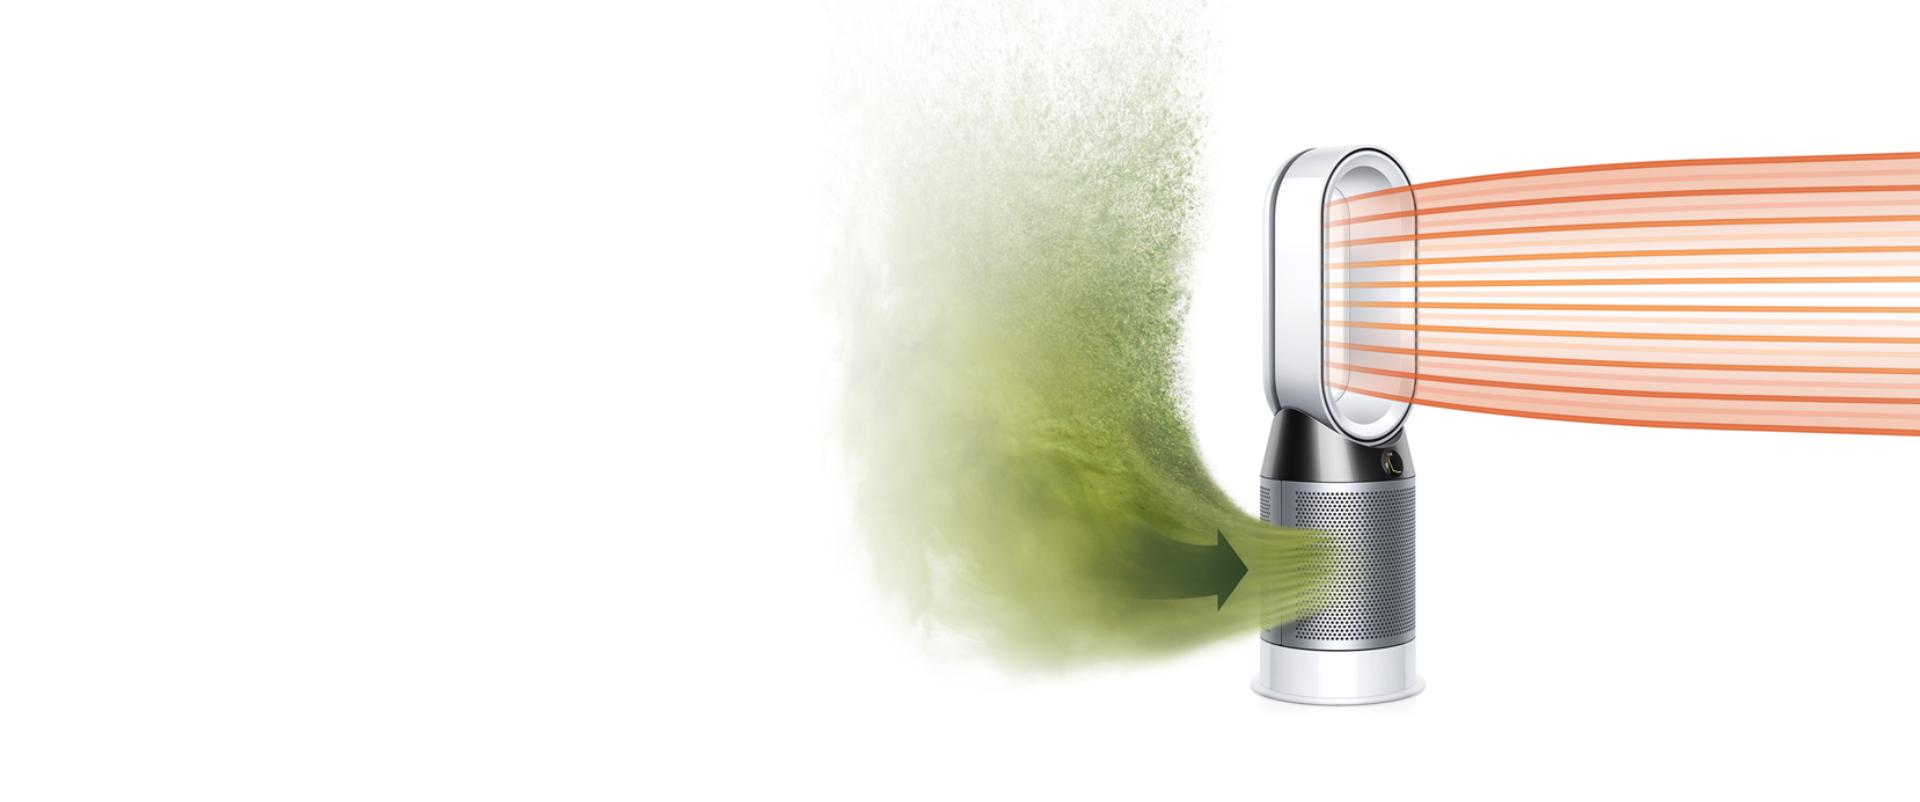 Dyson Pure Hot+Cool purifier fan heater projecting heated, purified air